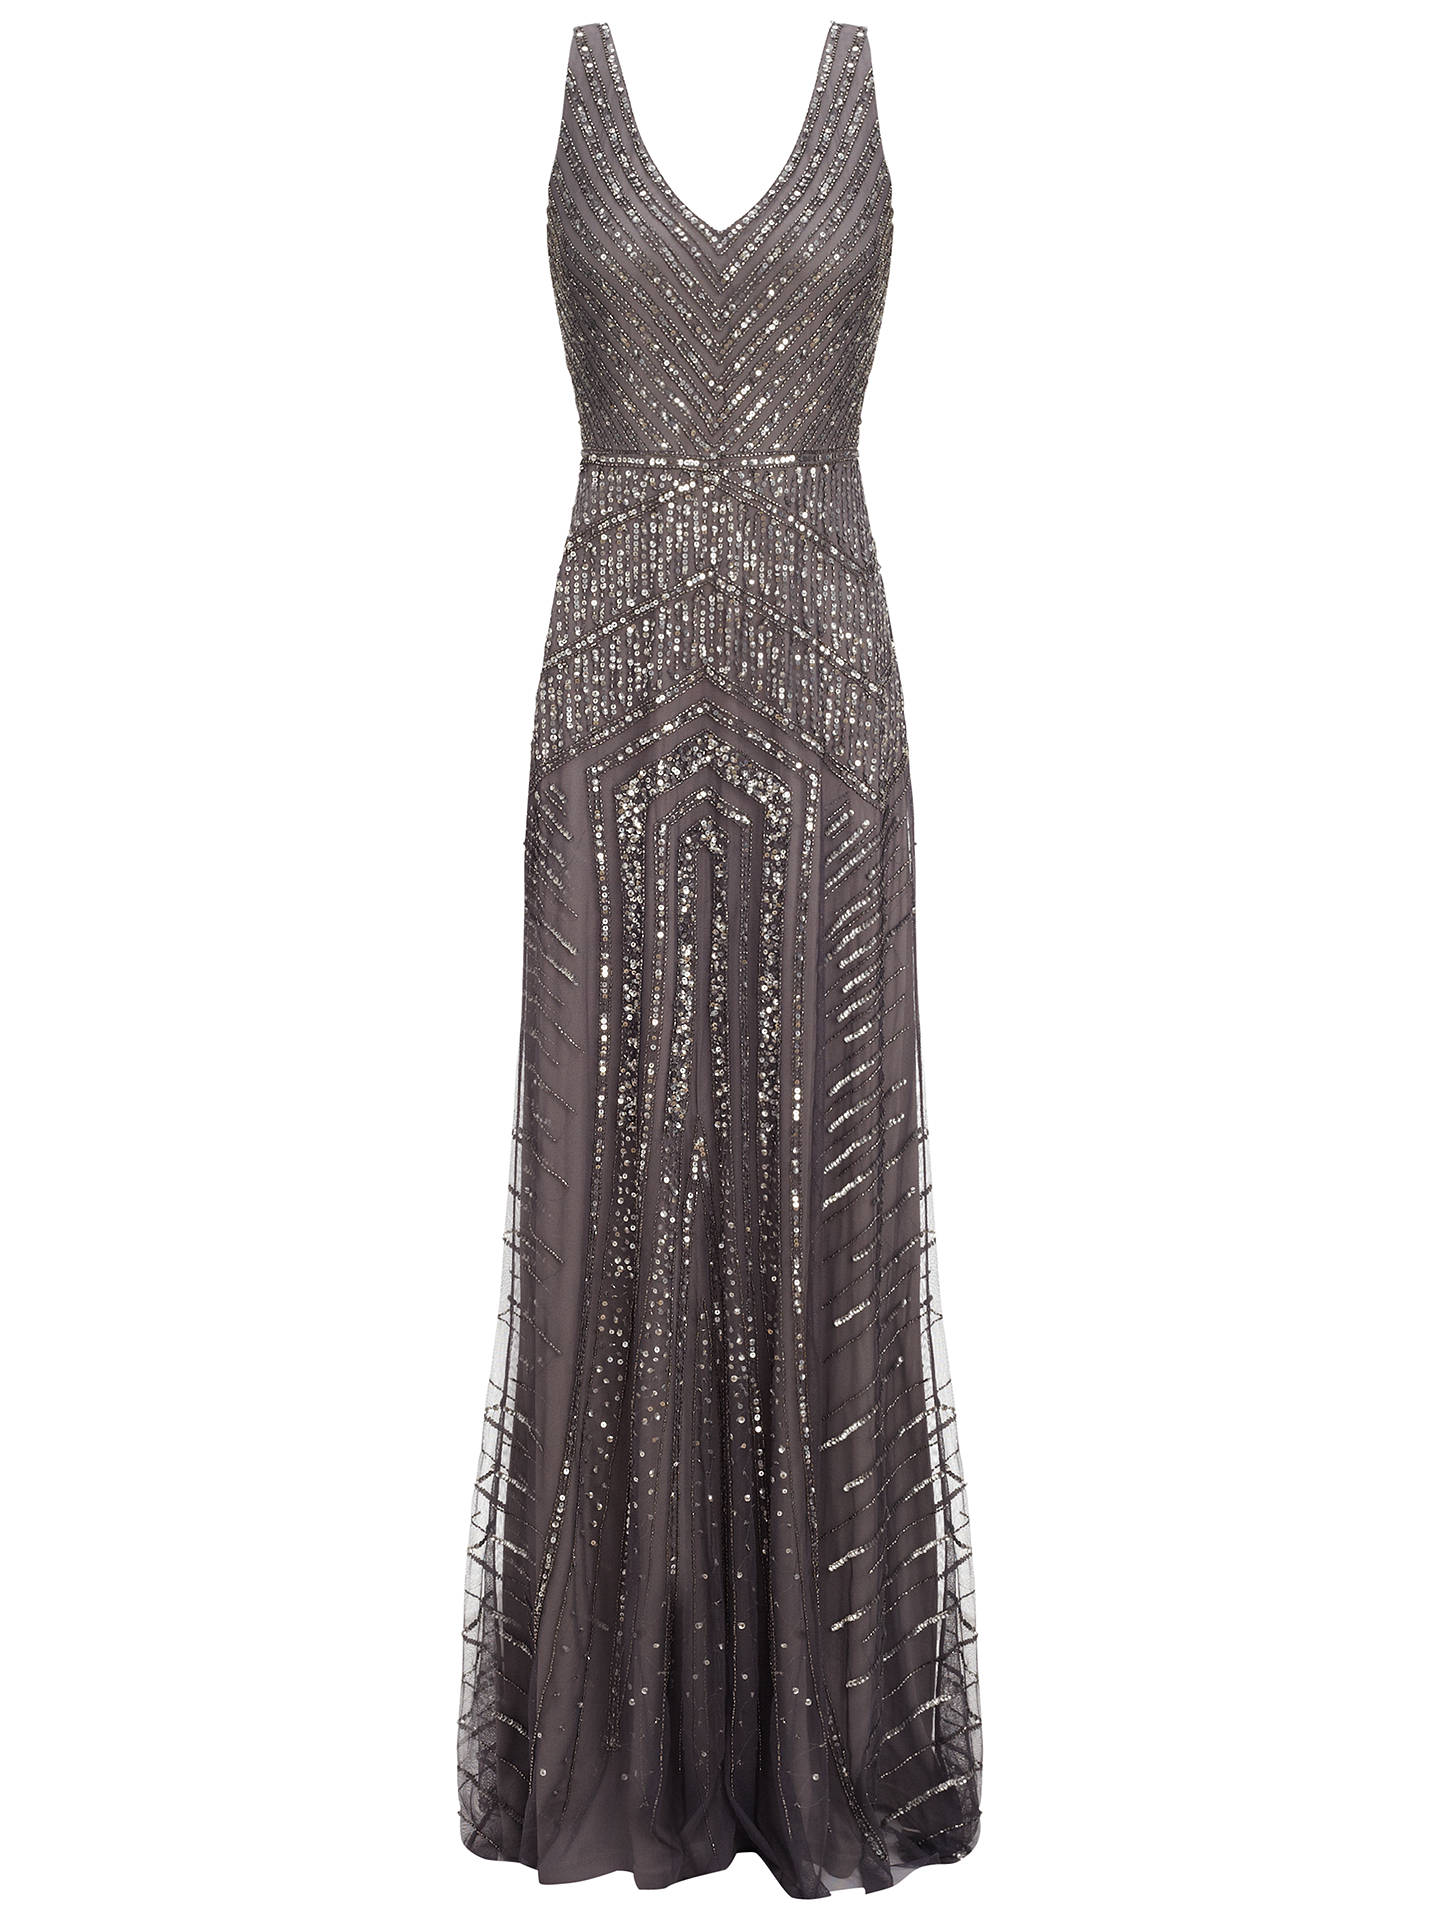 0c6d8cae46d078 Buy Adrianna Papell Long Beaded Gown, Gunmetal, 8 Online at johnlewis.com  ...